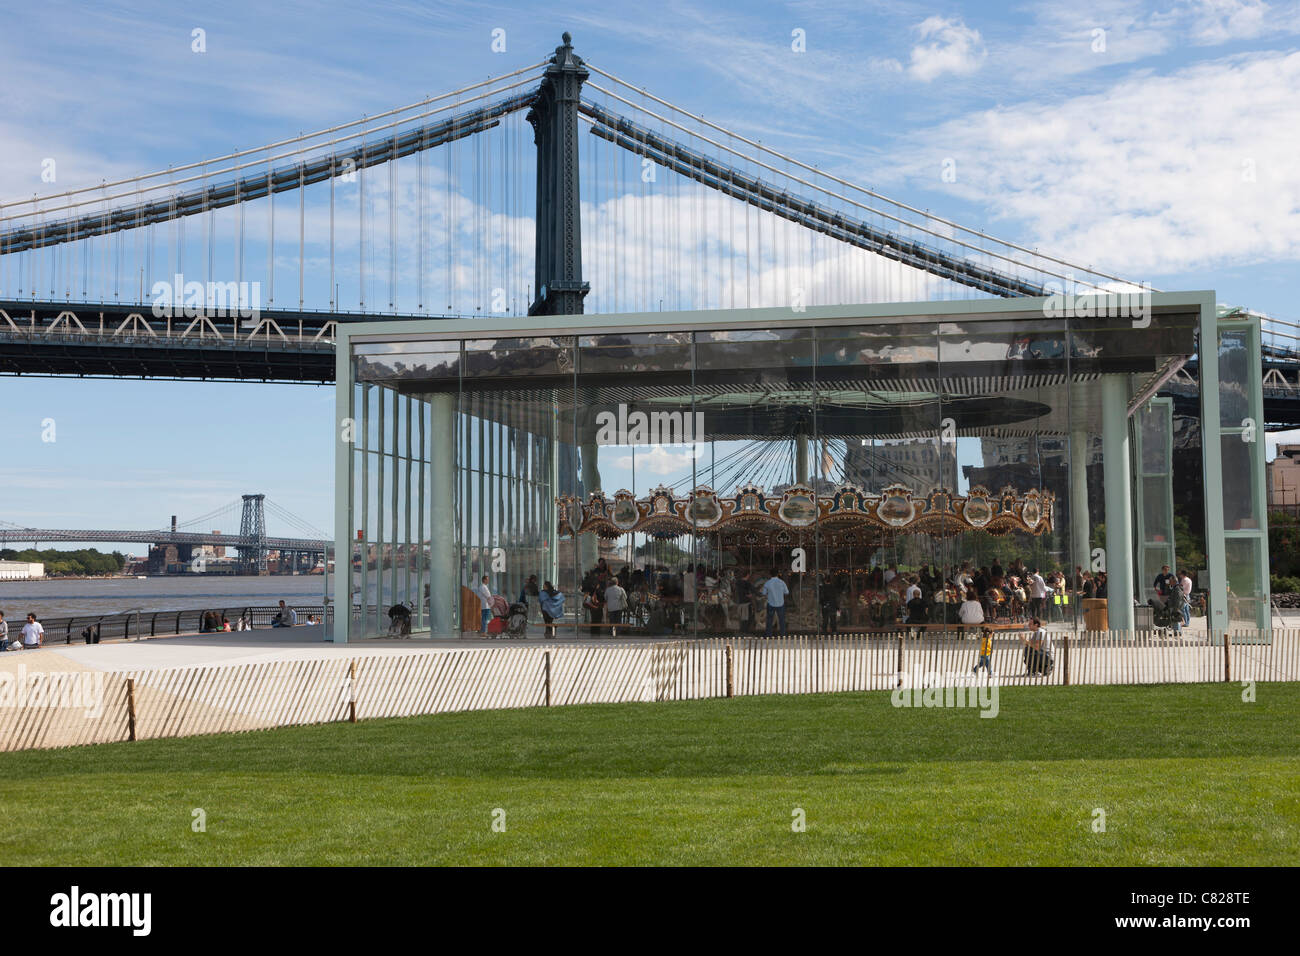 The historic Jane's Carousel in Brooklyn Bridge Park near the Manhattan Bridge in New York City. - Stock Image